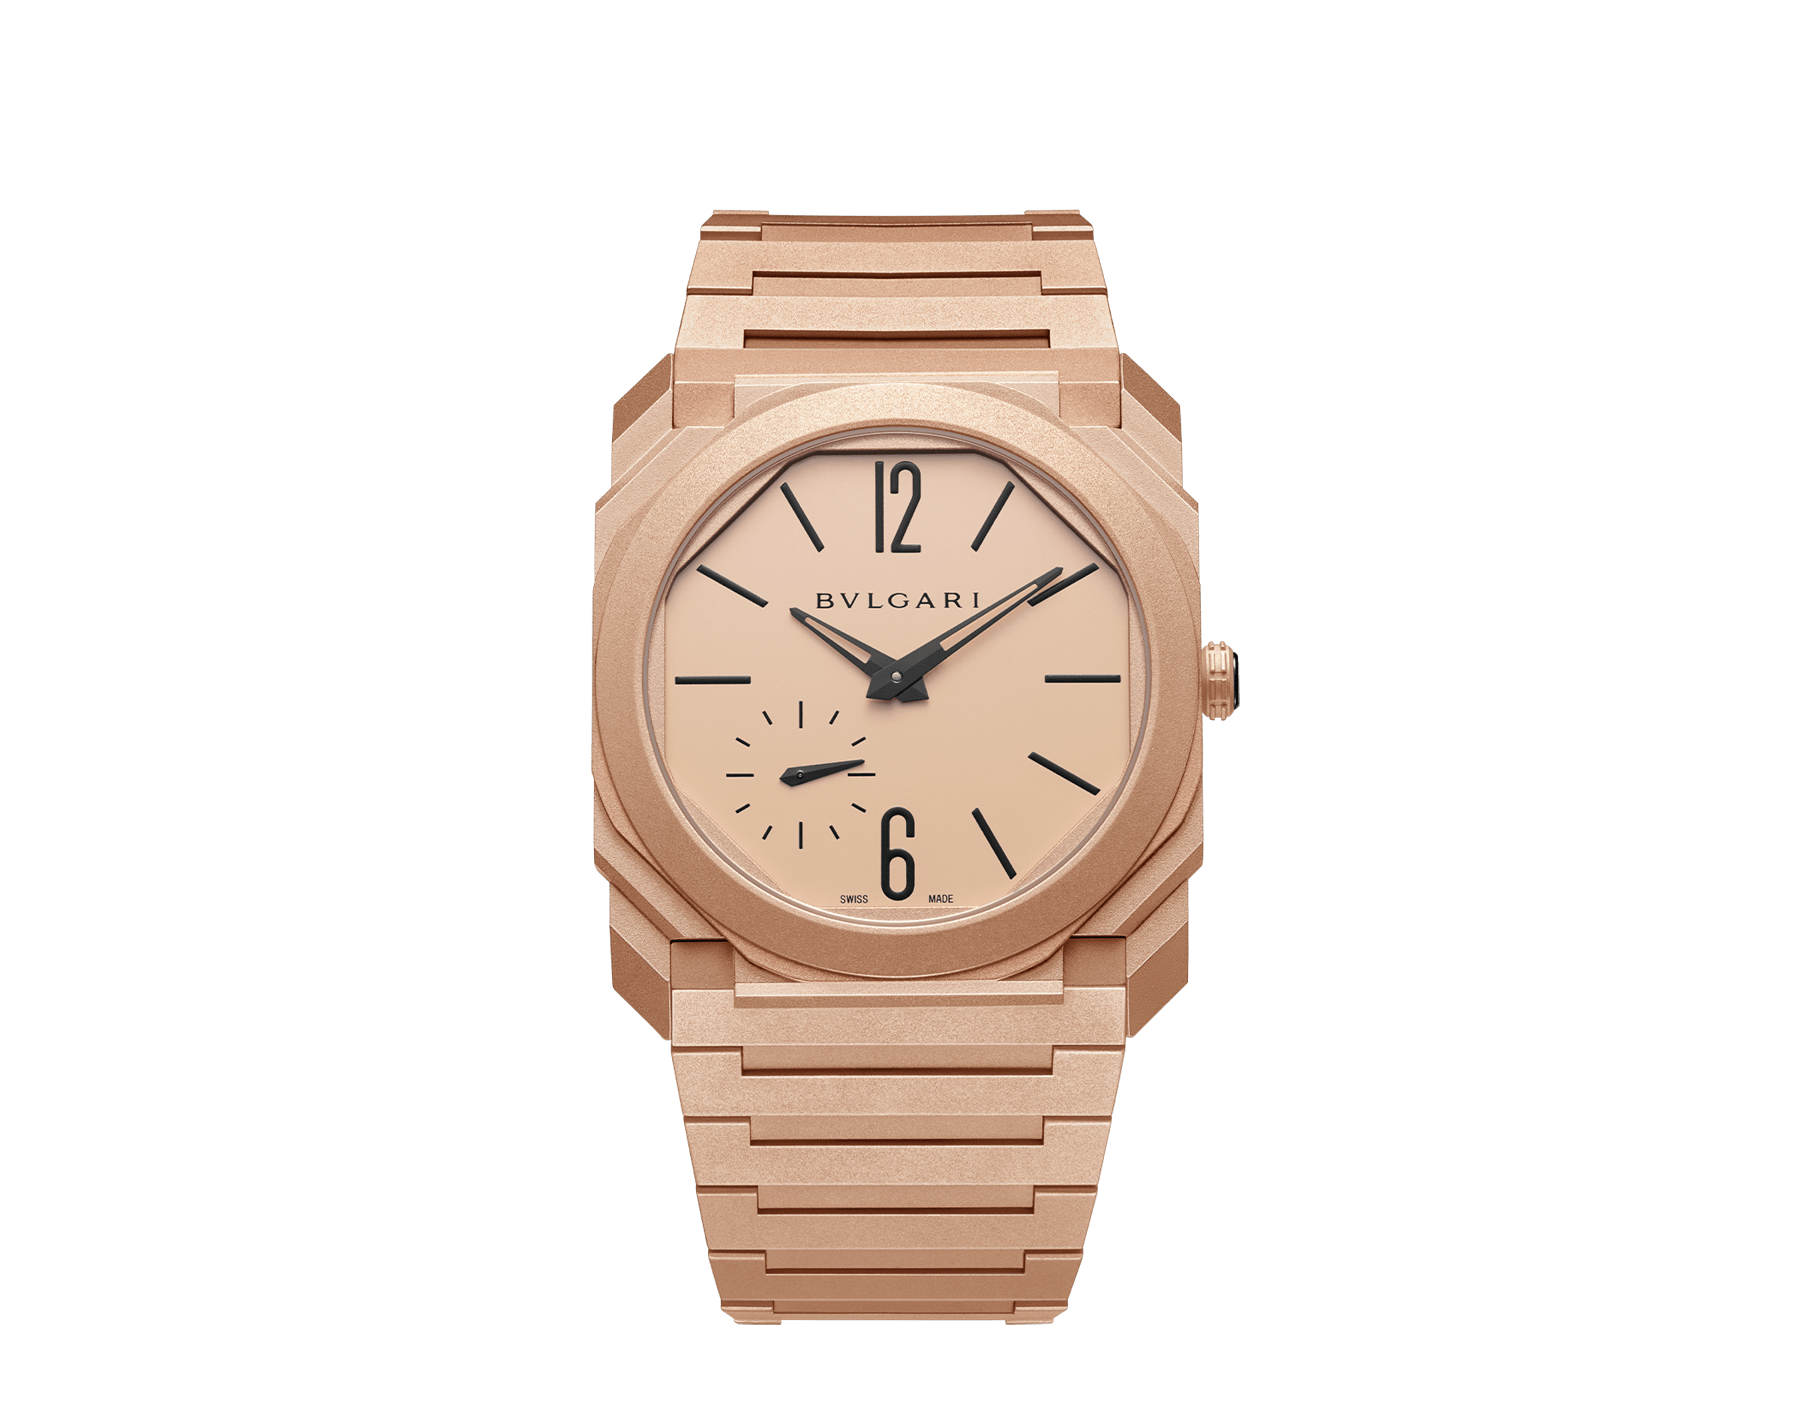 Octo Finissimo Automatic watch with mechanical manufacture movement, automatic winding, platinum microrotor, small seconds, extra-thin sandblasted 18 kt rose gold case and bracelet, and 18 kt rose gold dial 102912 image 1